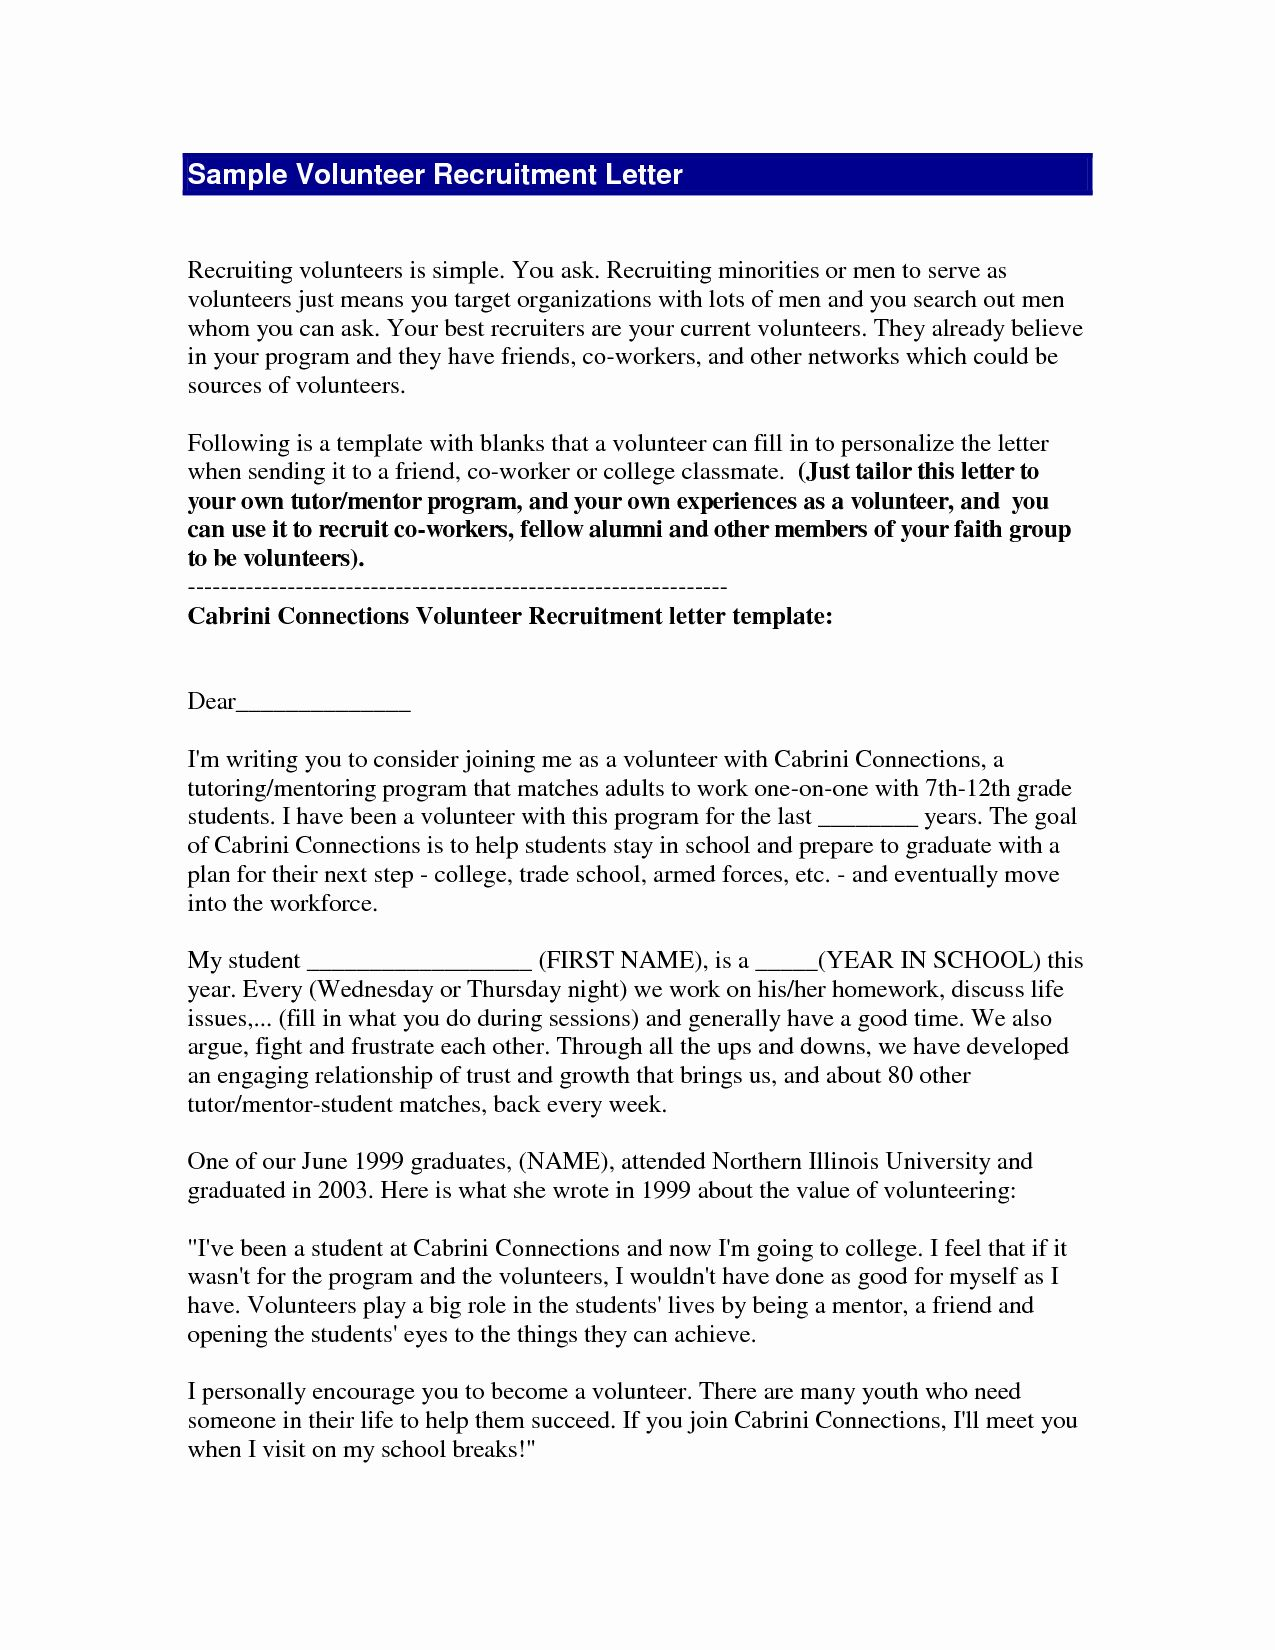 Free Strategic Plan Examples One Page Strategic Plan Template Strategic Planning Marketing Plan Template